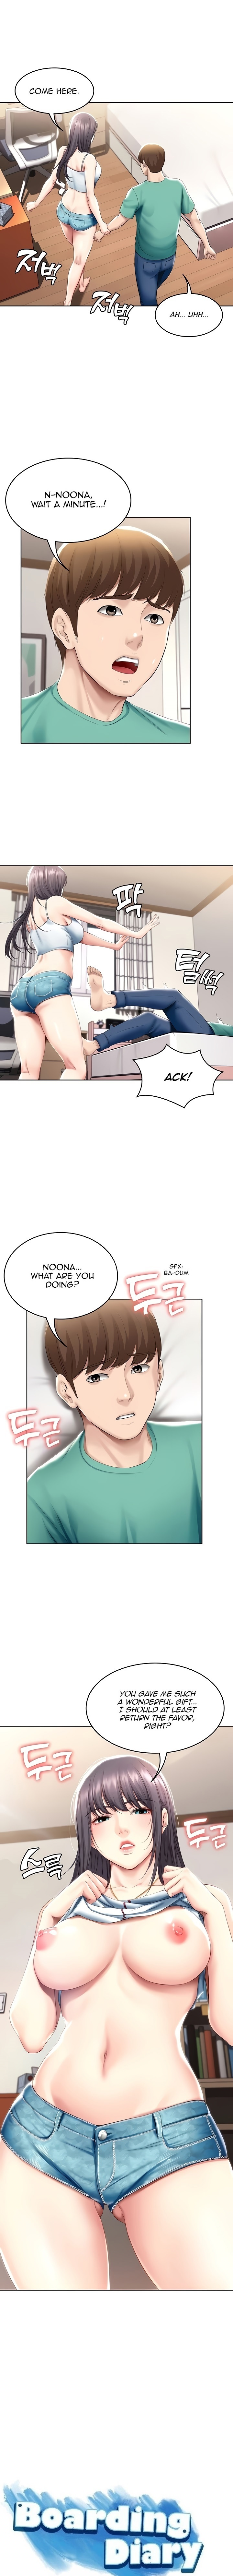 Boarding Diary - Chapter 59 Page 1